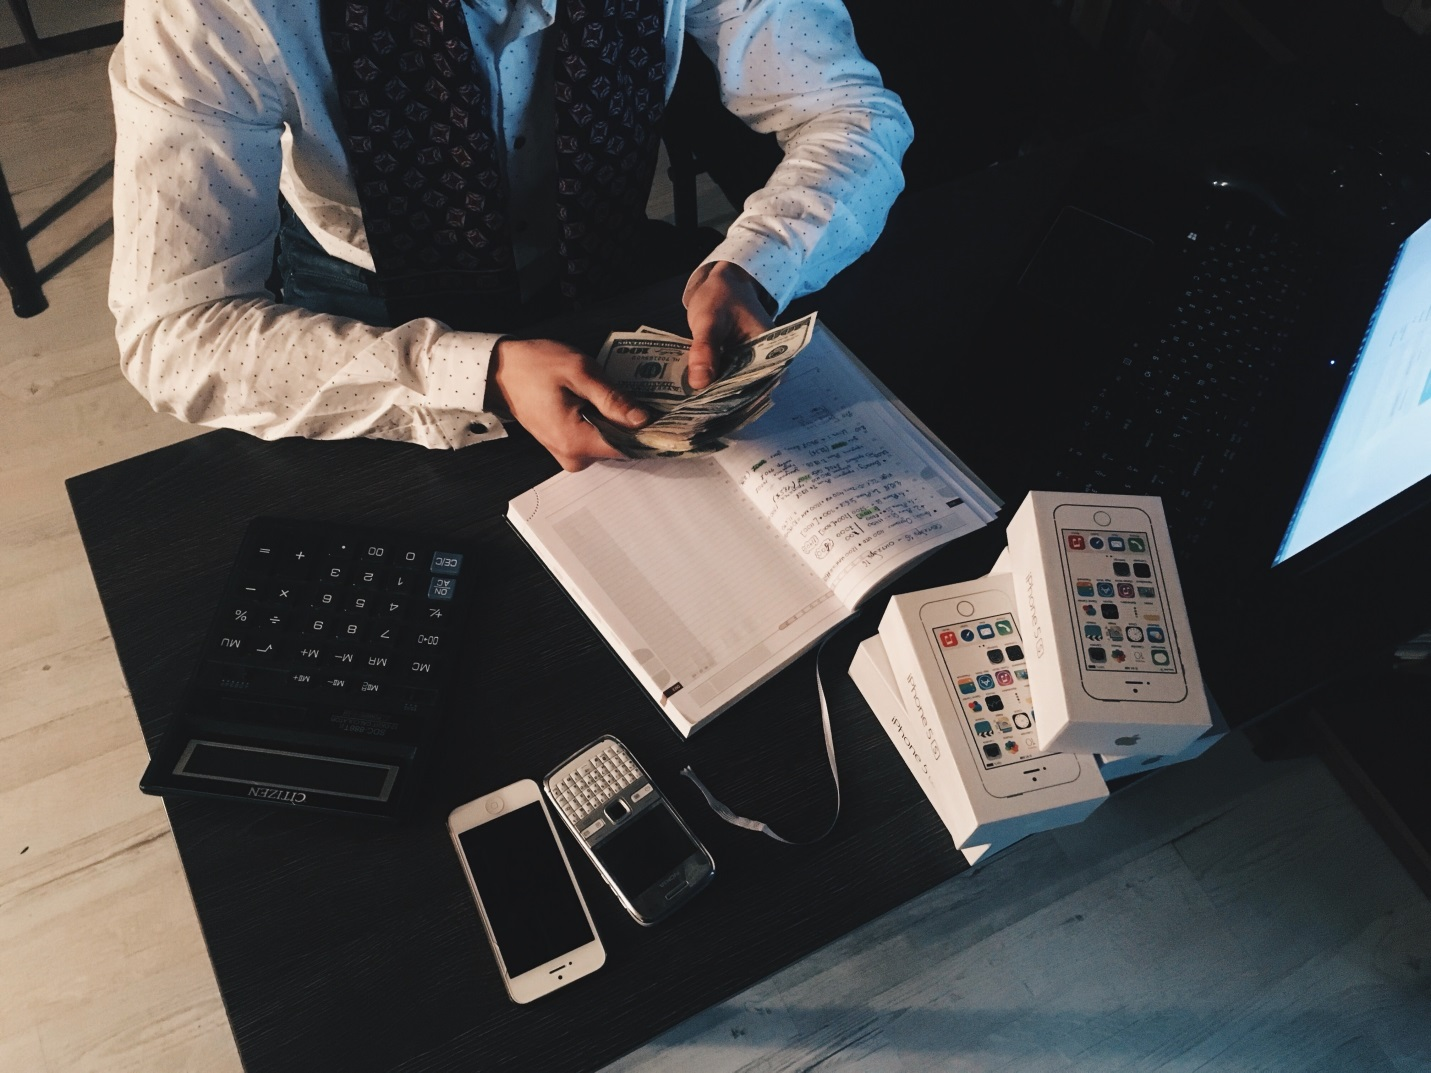 8 Tips for Entrepreneurs to Keep their Business Finances in Order